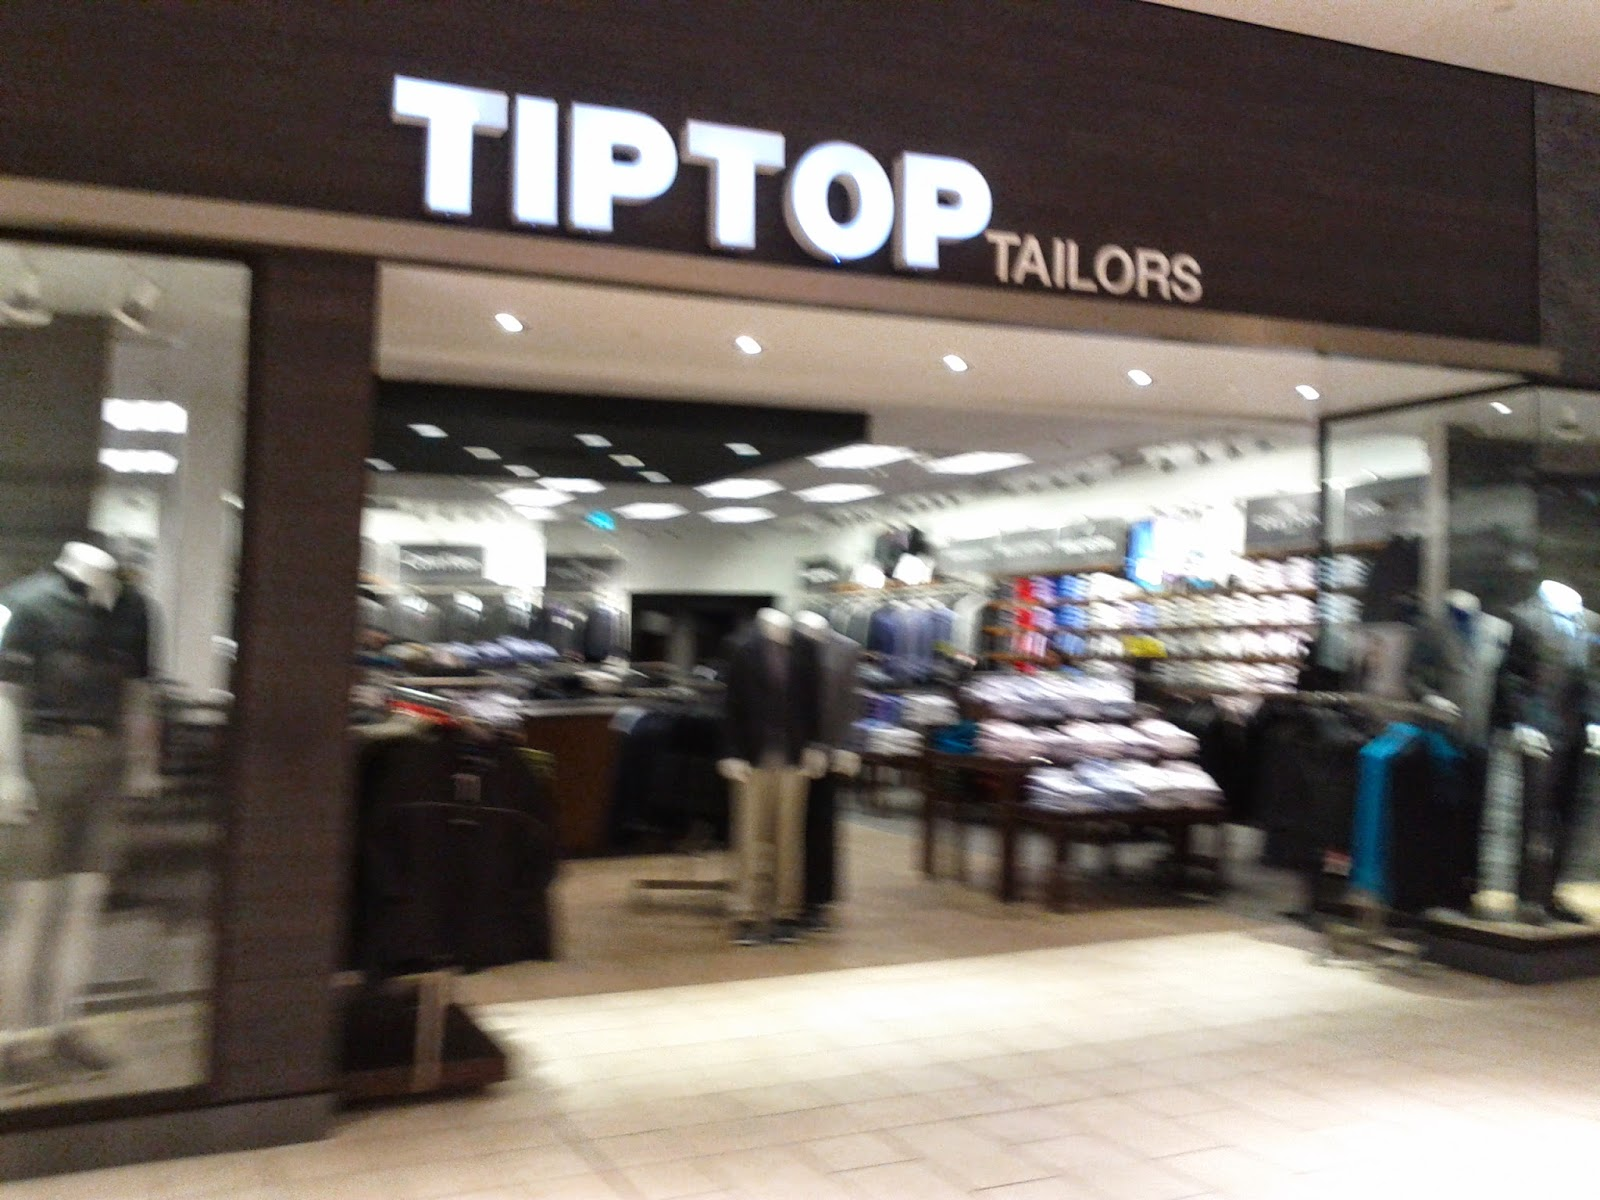 Tip Tip Tailors re-opens and relocates within Dufferin Mall